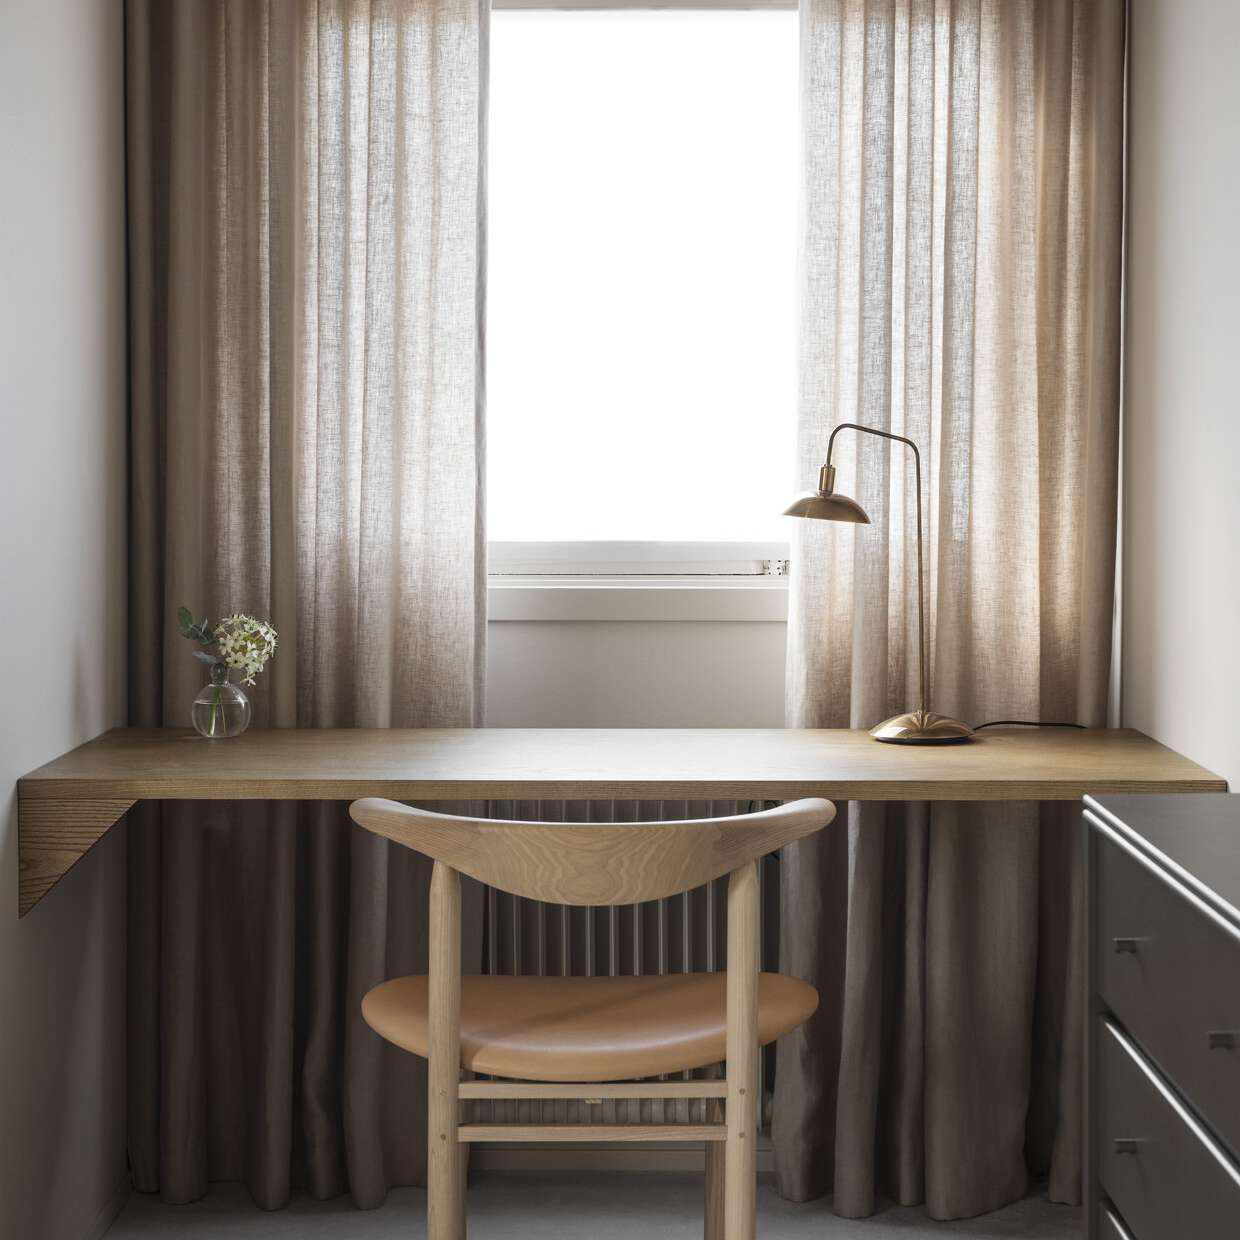 A small desk tucked against a curtain-lined window